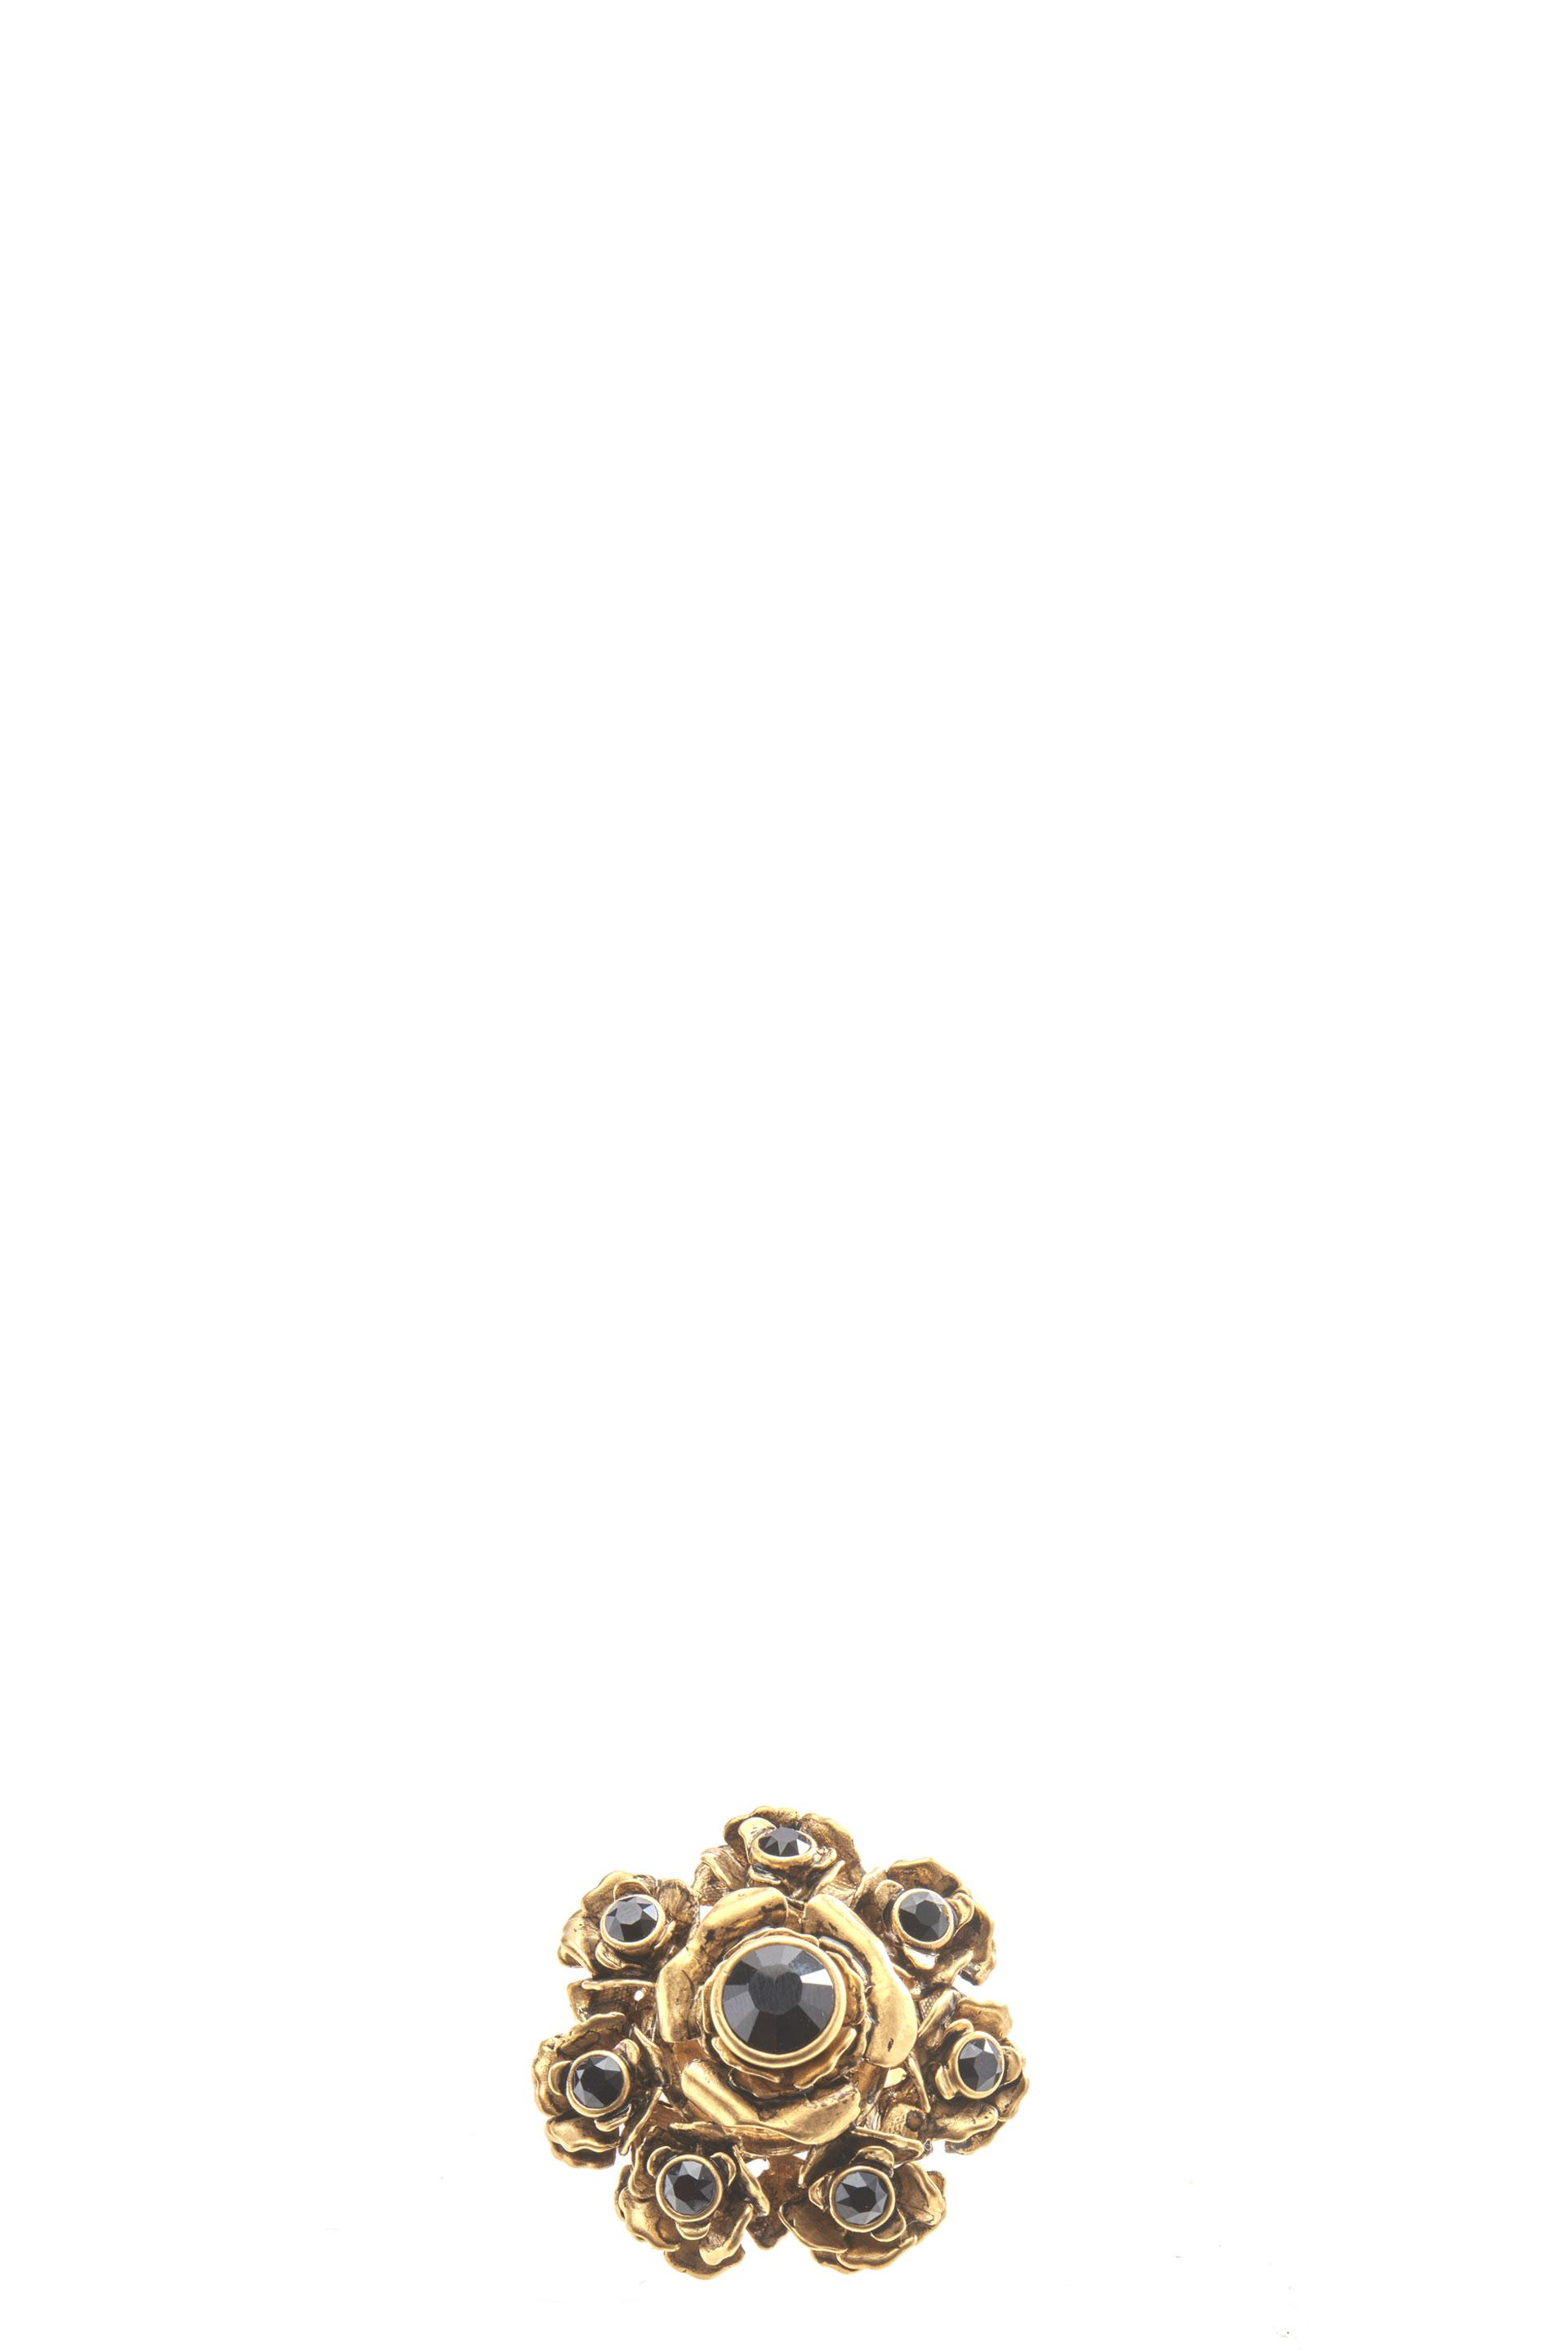 Marc Jacobs Rings Large Flower Cocktail Ring